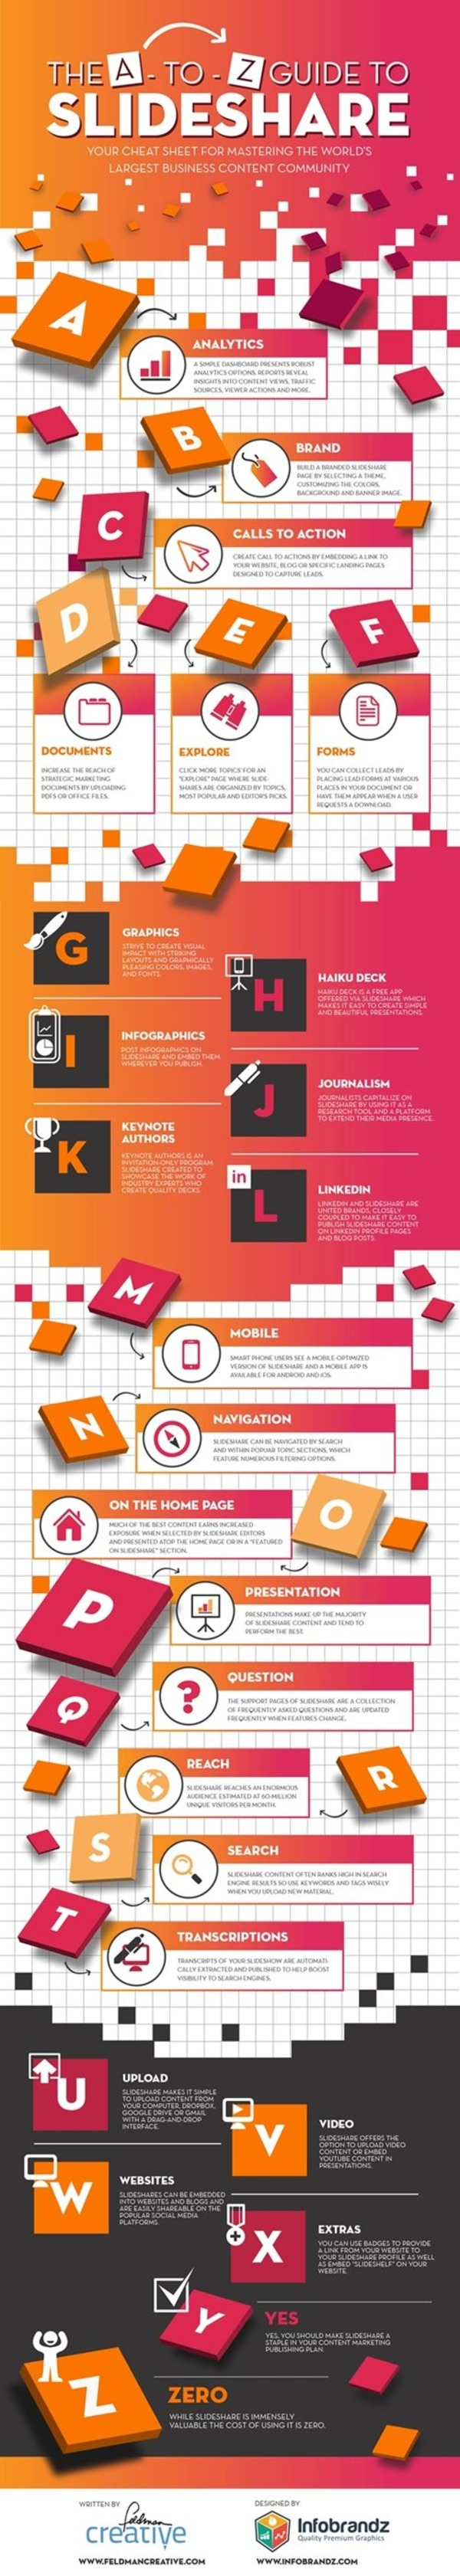 Eight Powerful SlideShare Features You May Not Be Using [Infographic] - Profs | The Marketing Technology Alert | Scoop.it